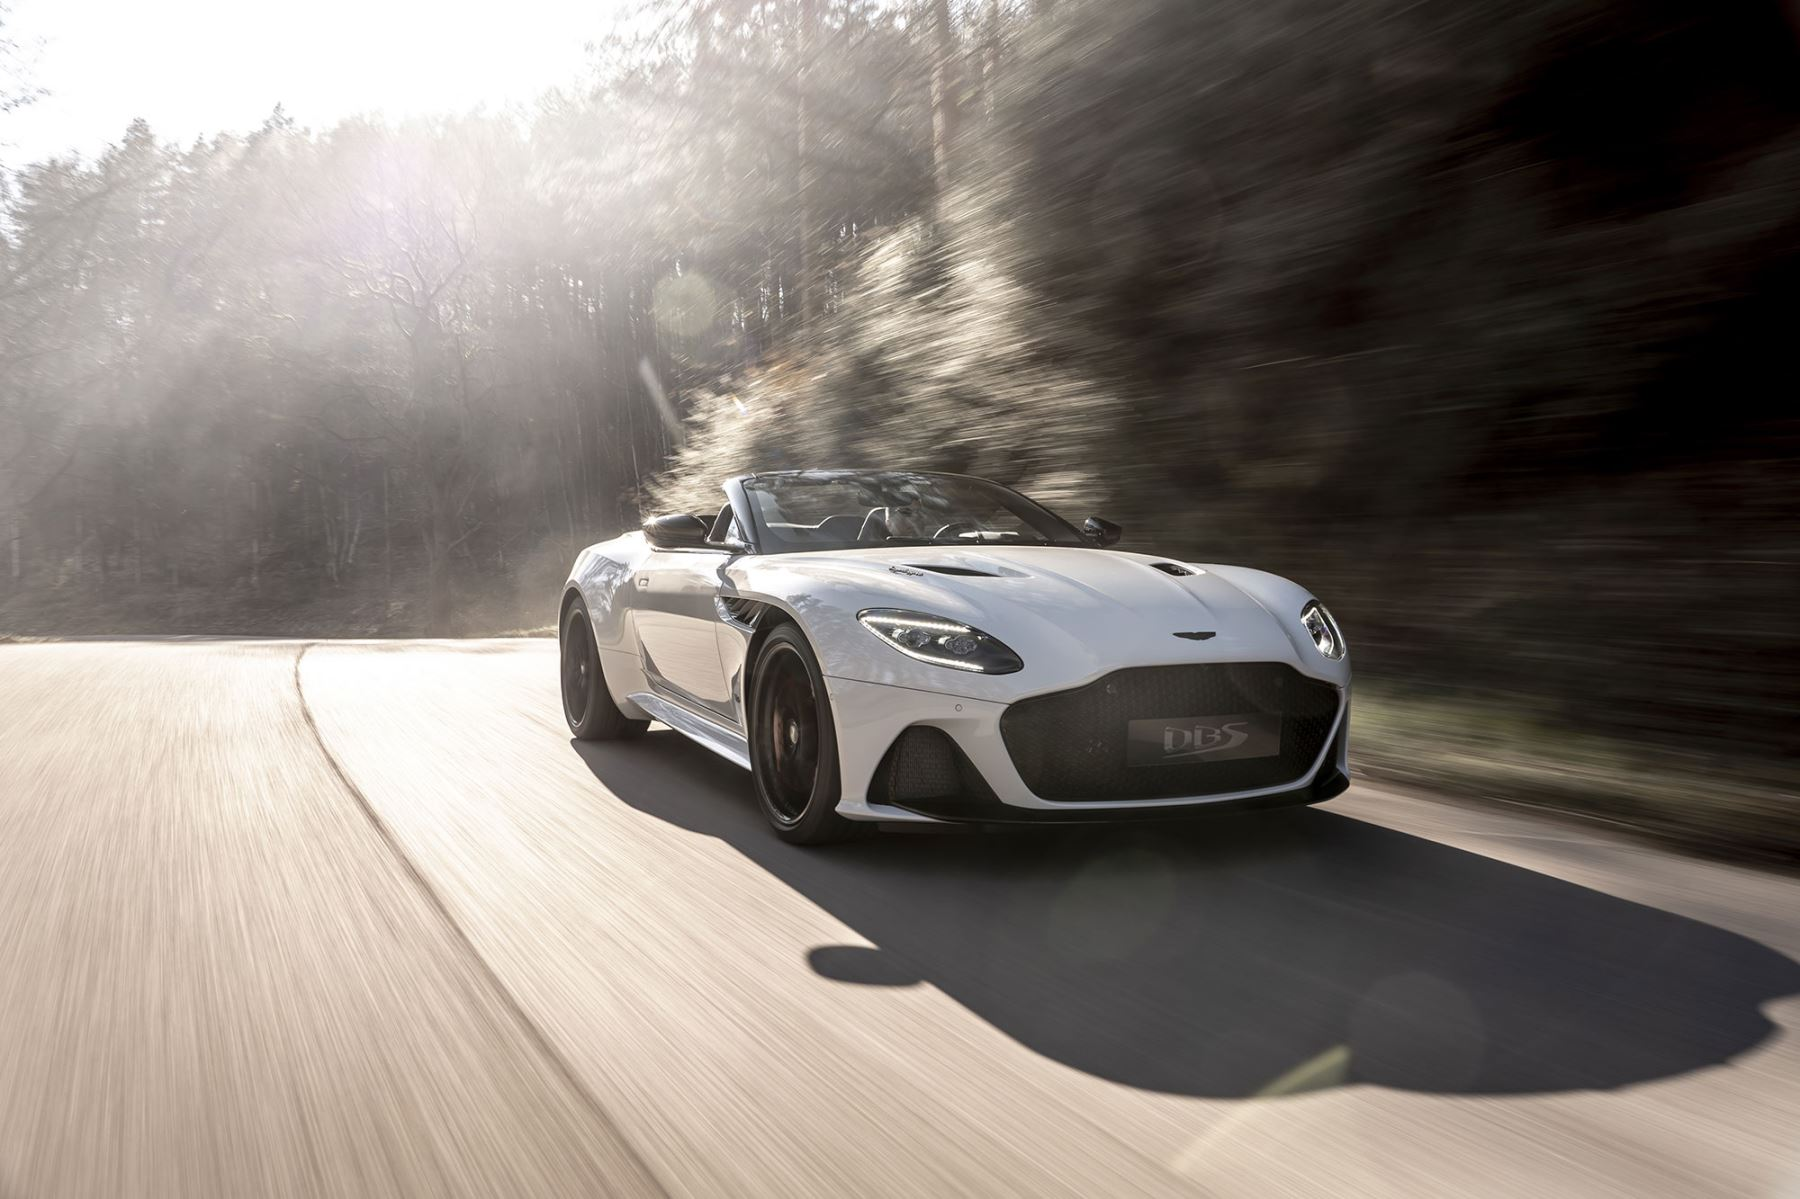 Aston Martin DBS Superleggera Volante - The Ulimate Open Top GT image 2